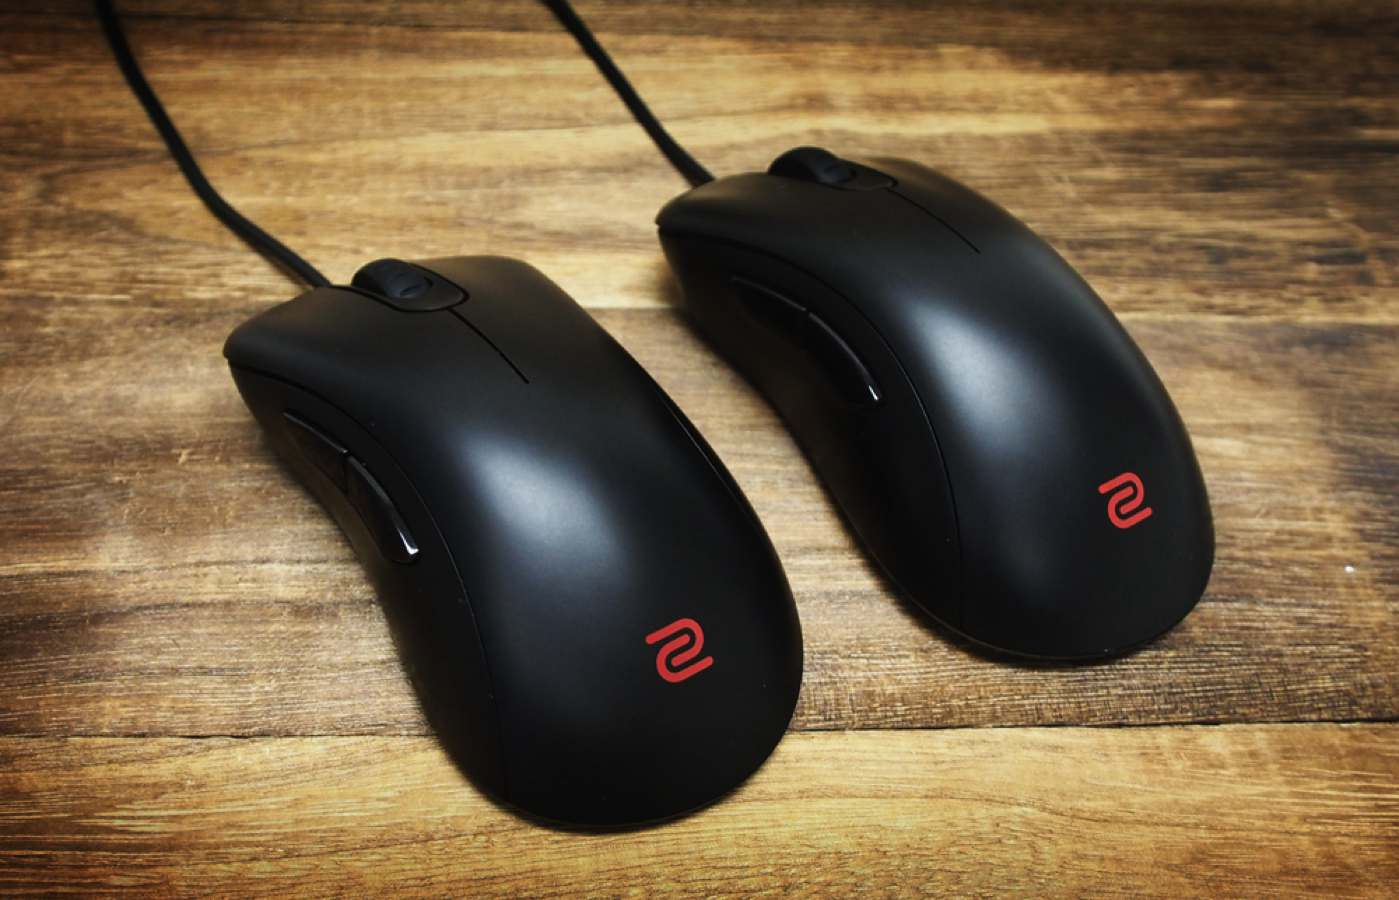 two benq zowie gaming mouses on a hardwood floor